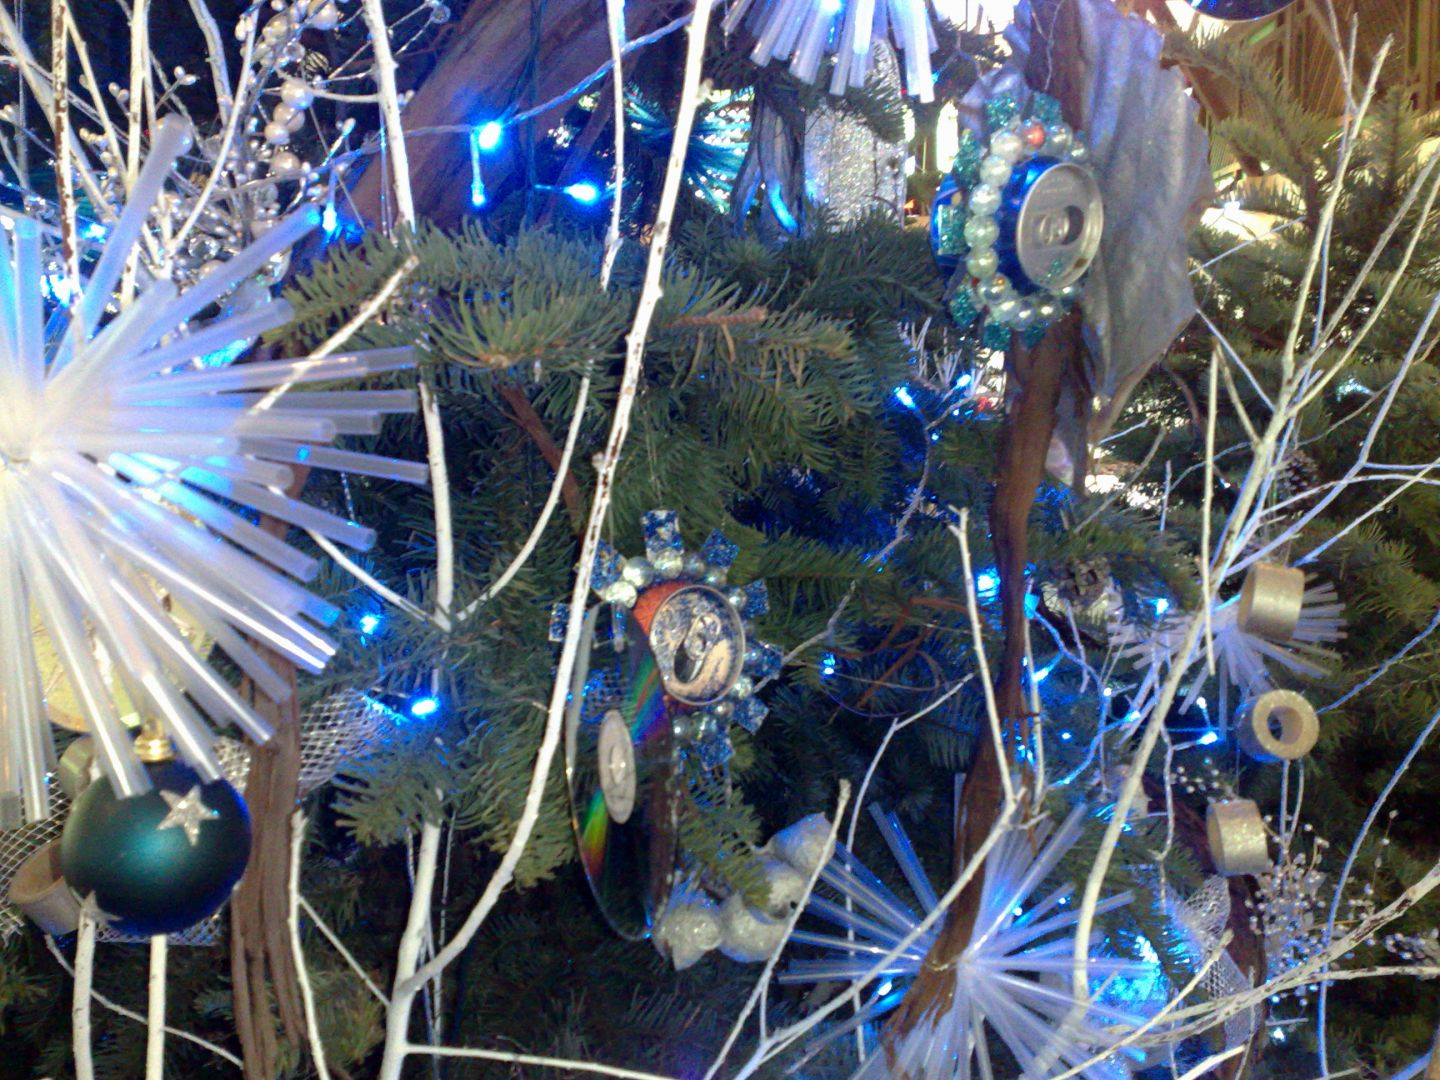 Christmas Decor Made From Recycled Materials : Christmas tree dressed in recycled materials zit seng s